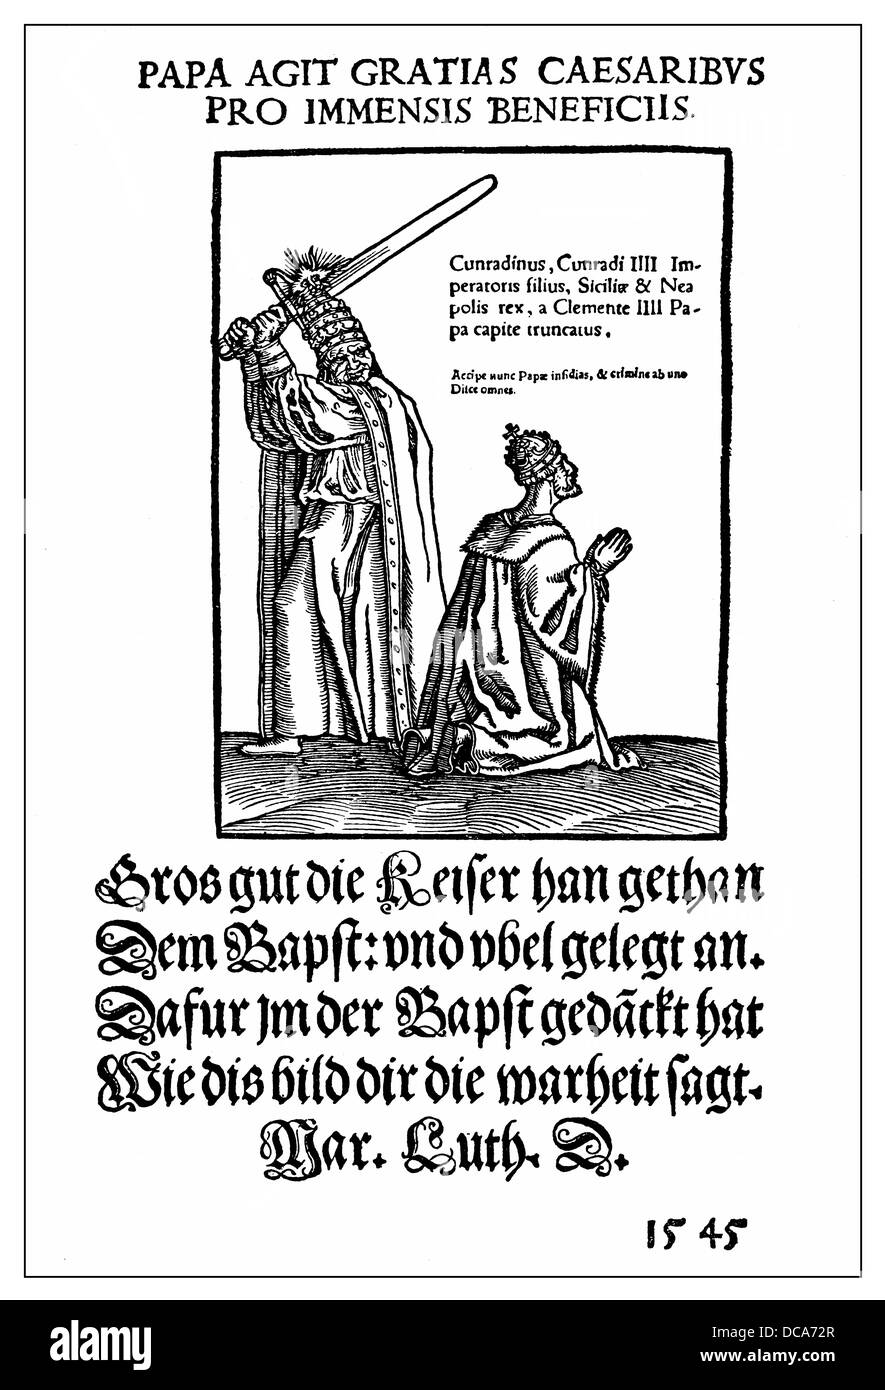 Historical satirical pamphlet on the papacy from 1545, the Pope beheading the emperor, from Lucas Cranach and Martin - Stock Image